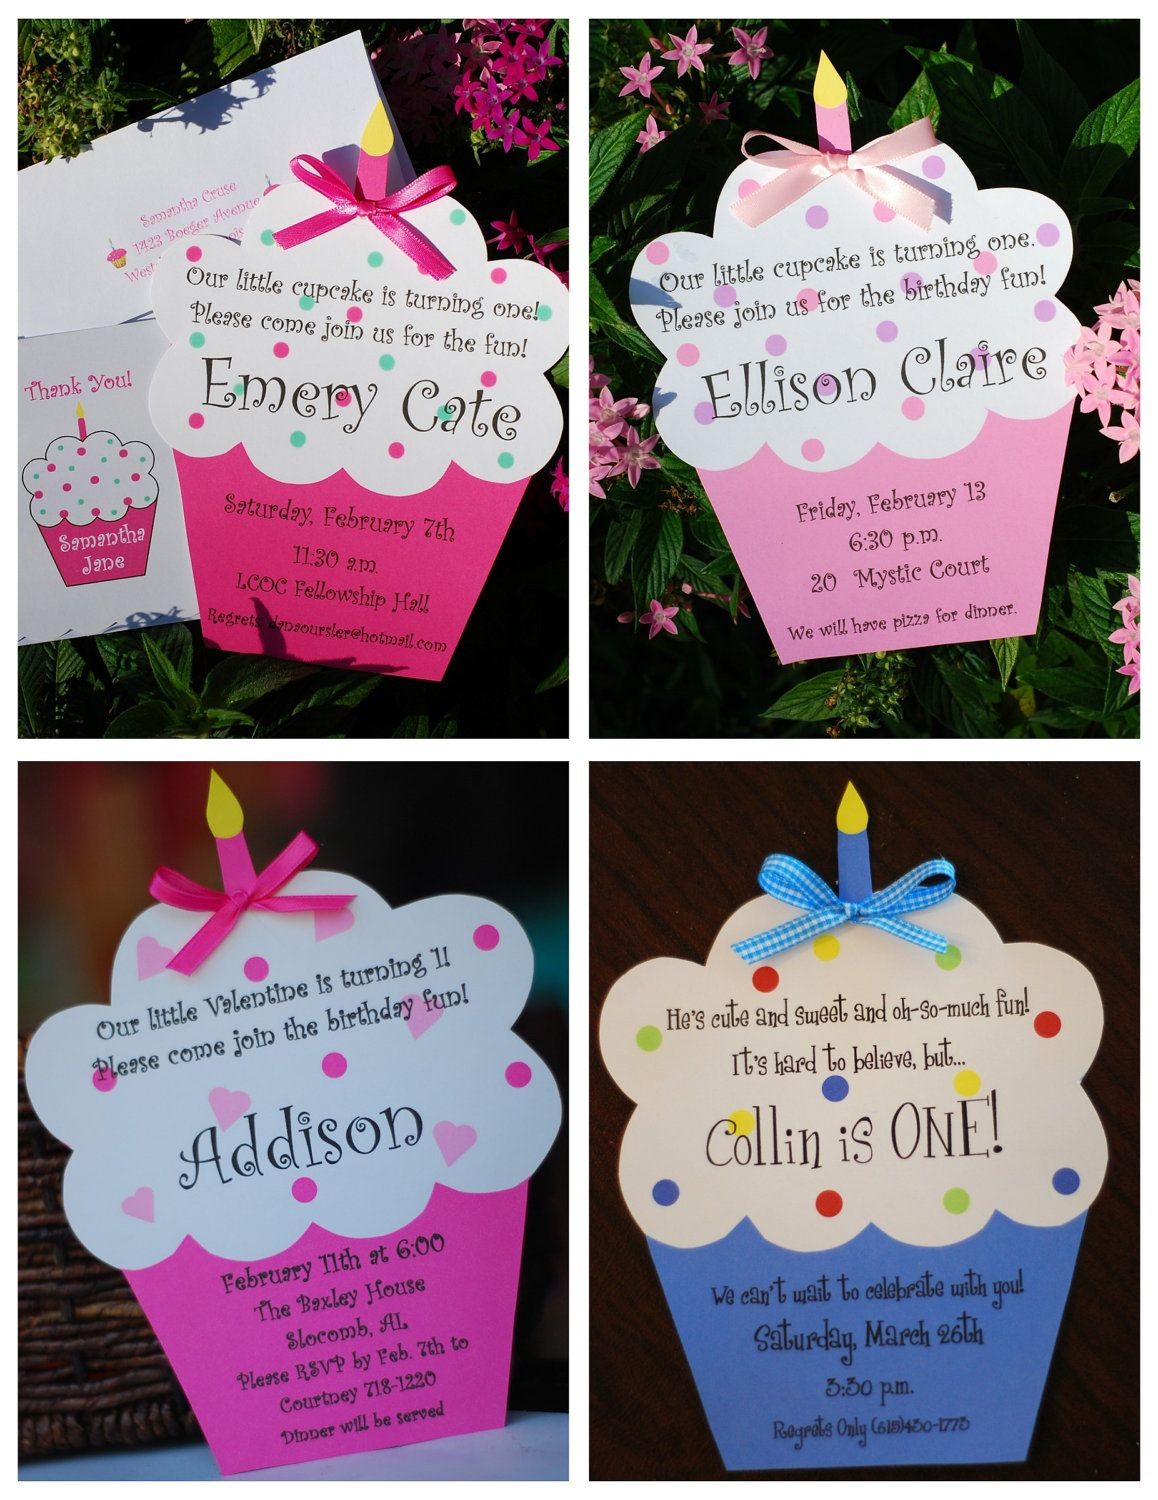 10 cupcake birthday invitations by palm beach polkadots cupcake cupcake birthday invitation 200 via etsy adorable filmwisefo Gallery